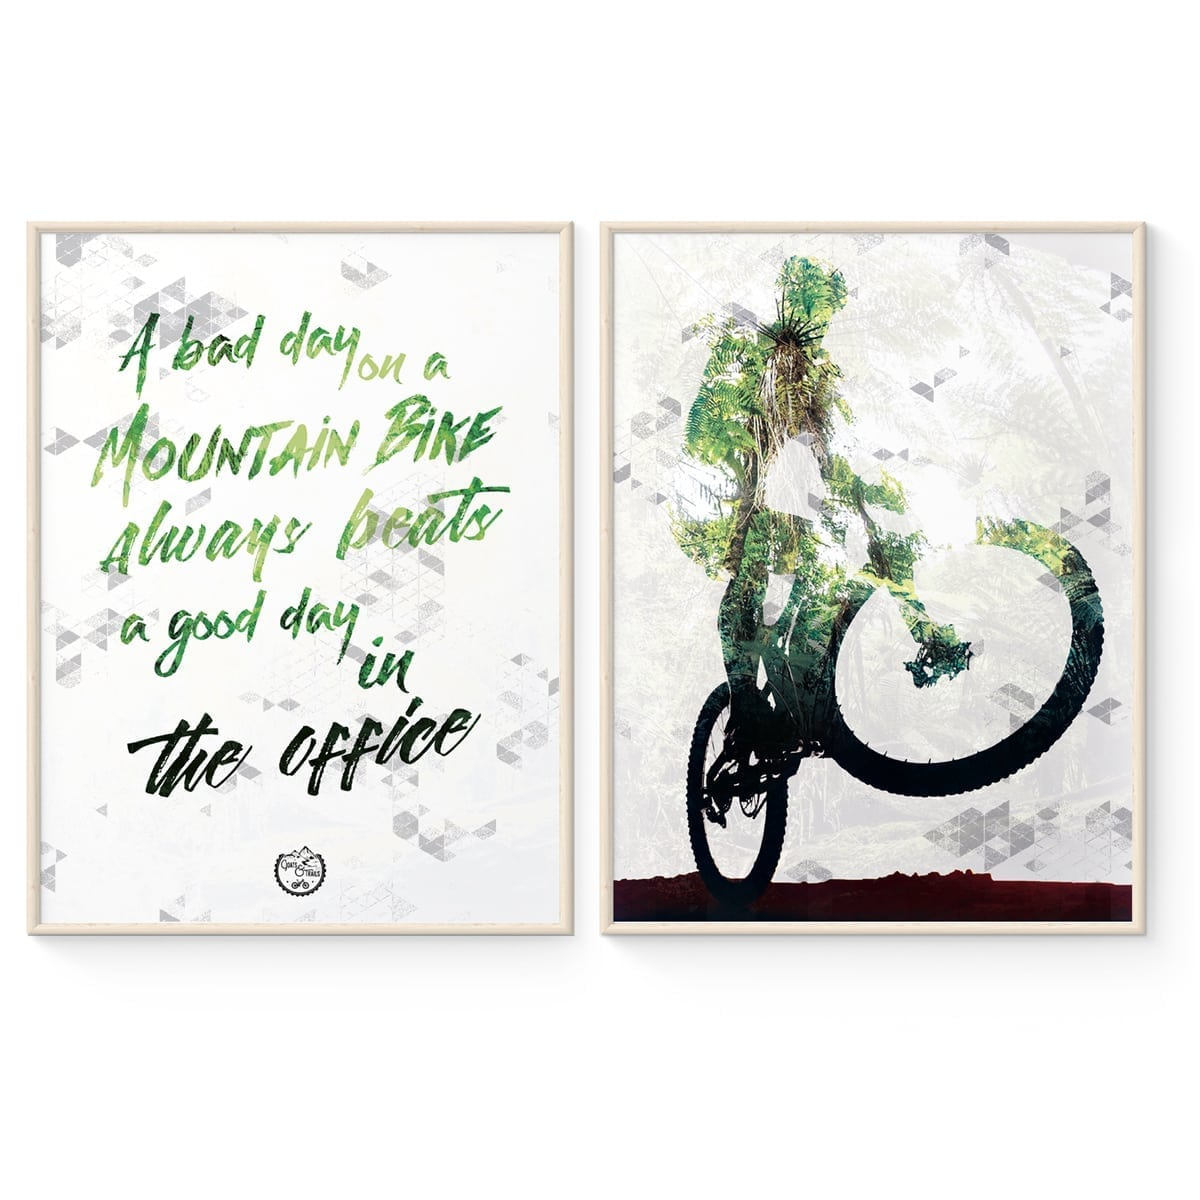 Mountainbike Statement Poster from Goats & Trails